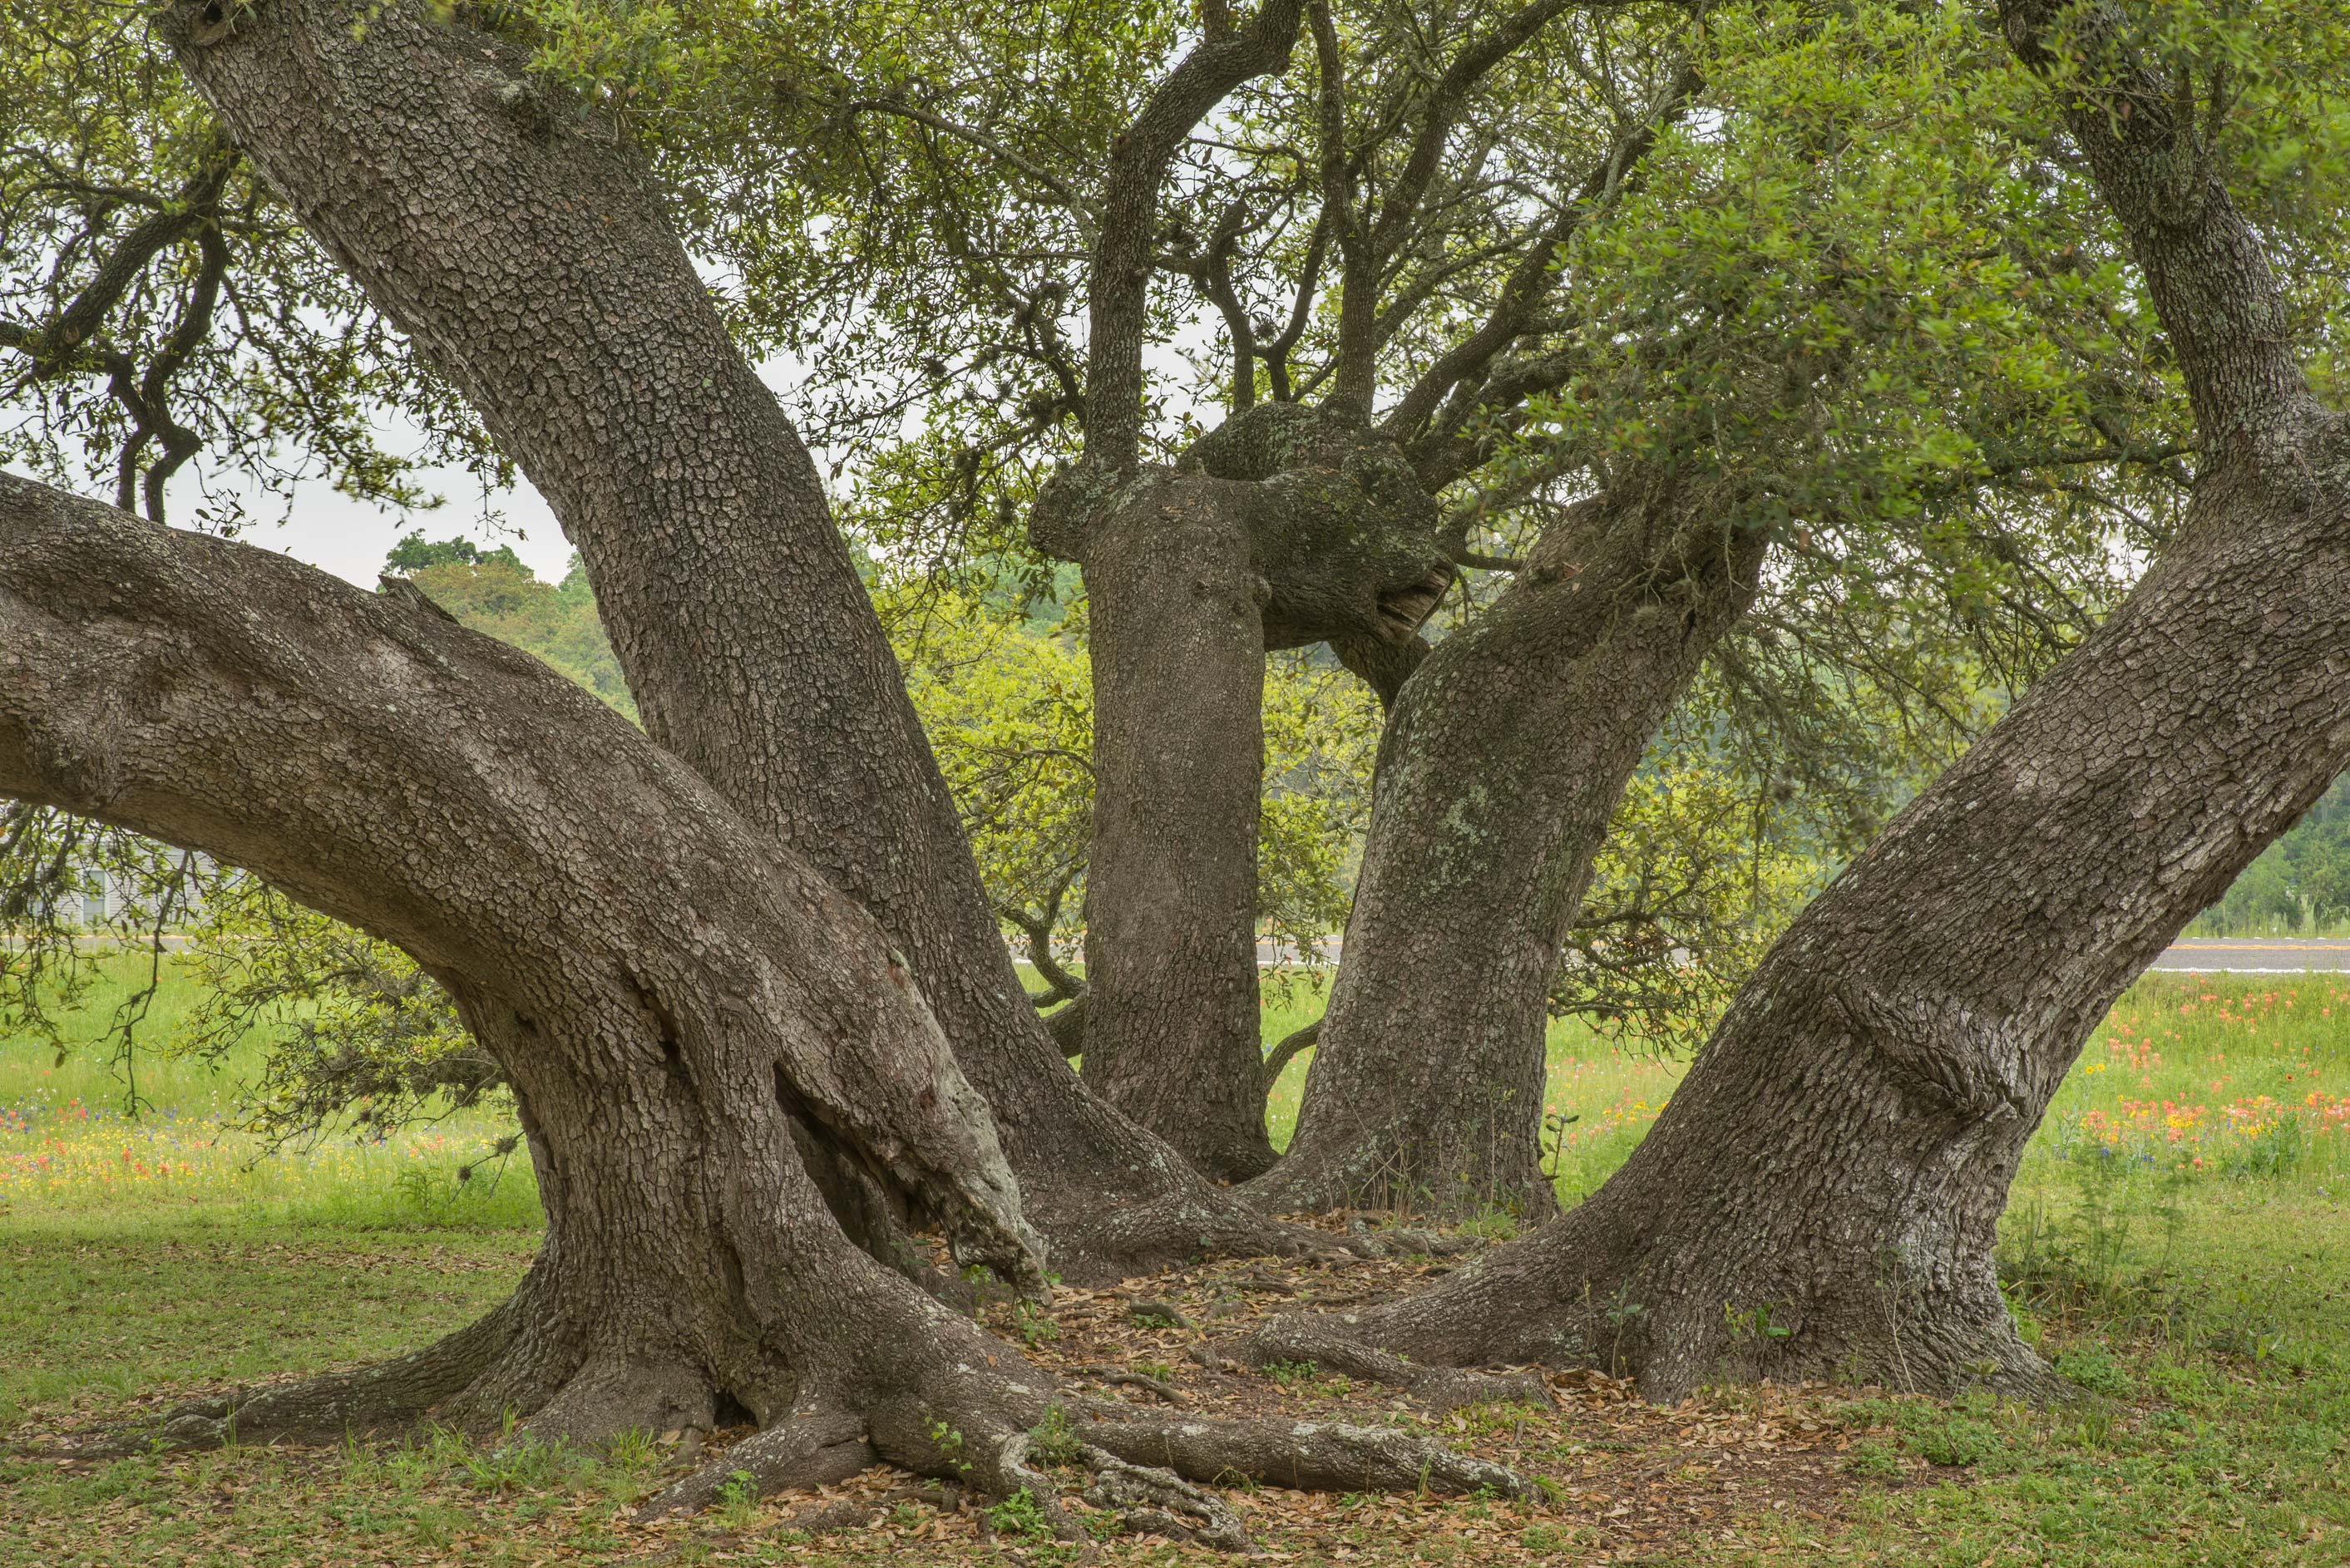 Oaks in Old Baylor Park. Independence, Texas